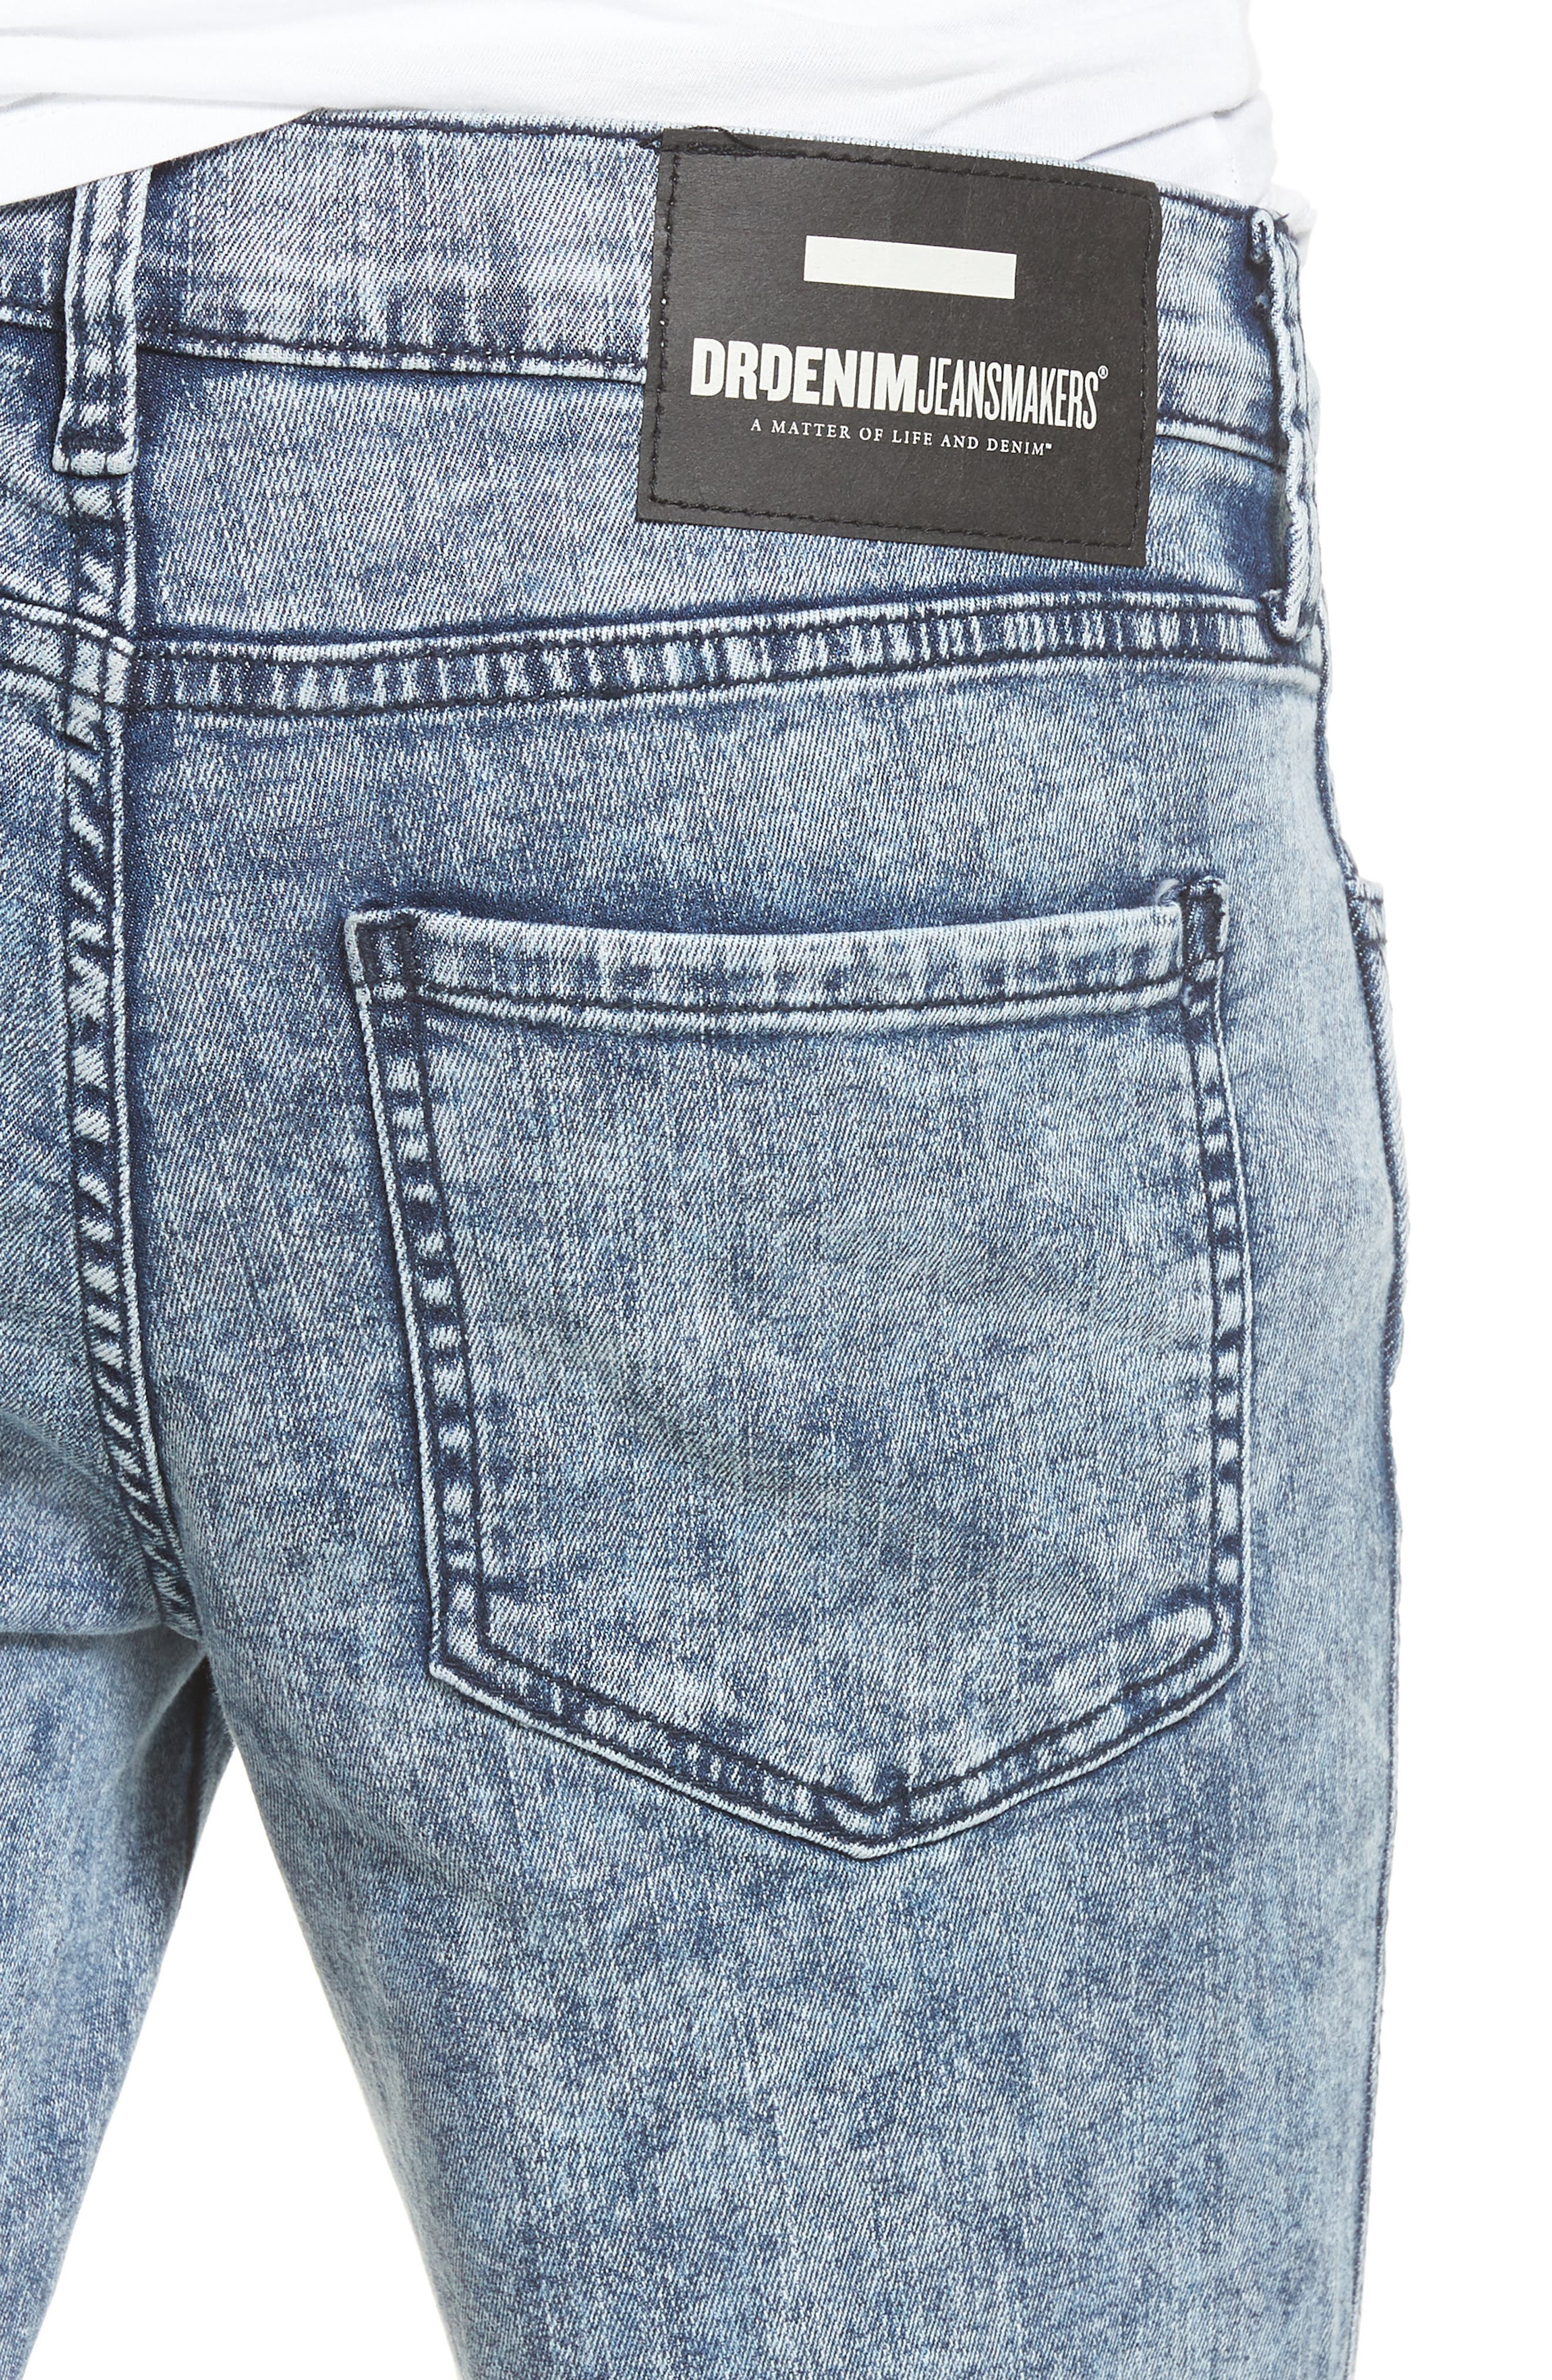 Snap Skinny Fit Jeans,                             Alternate thumbnail 4, color,                             400